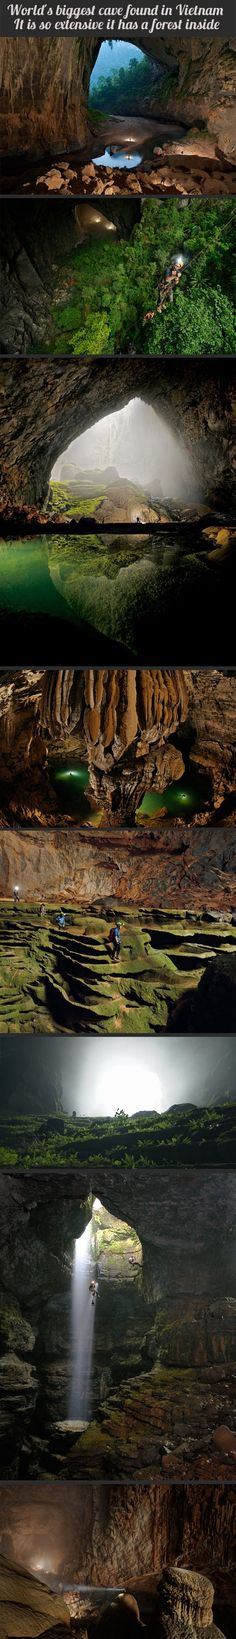 Worlds biggest cave.